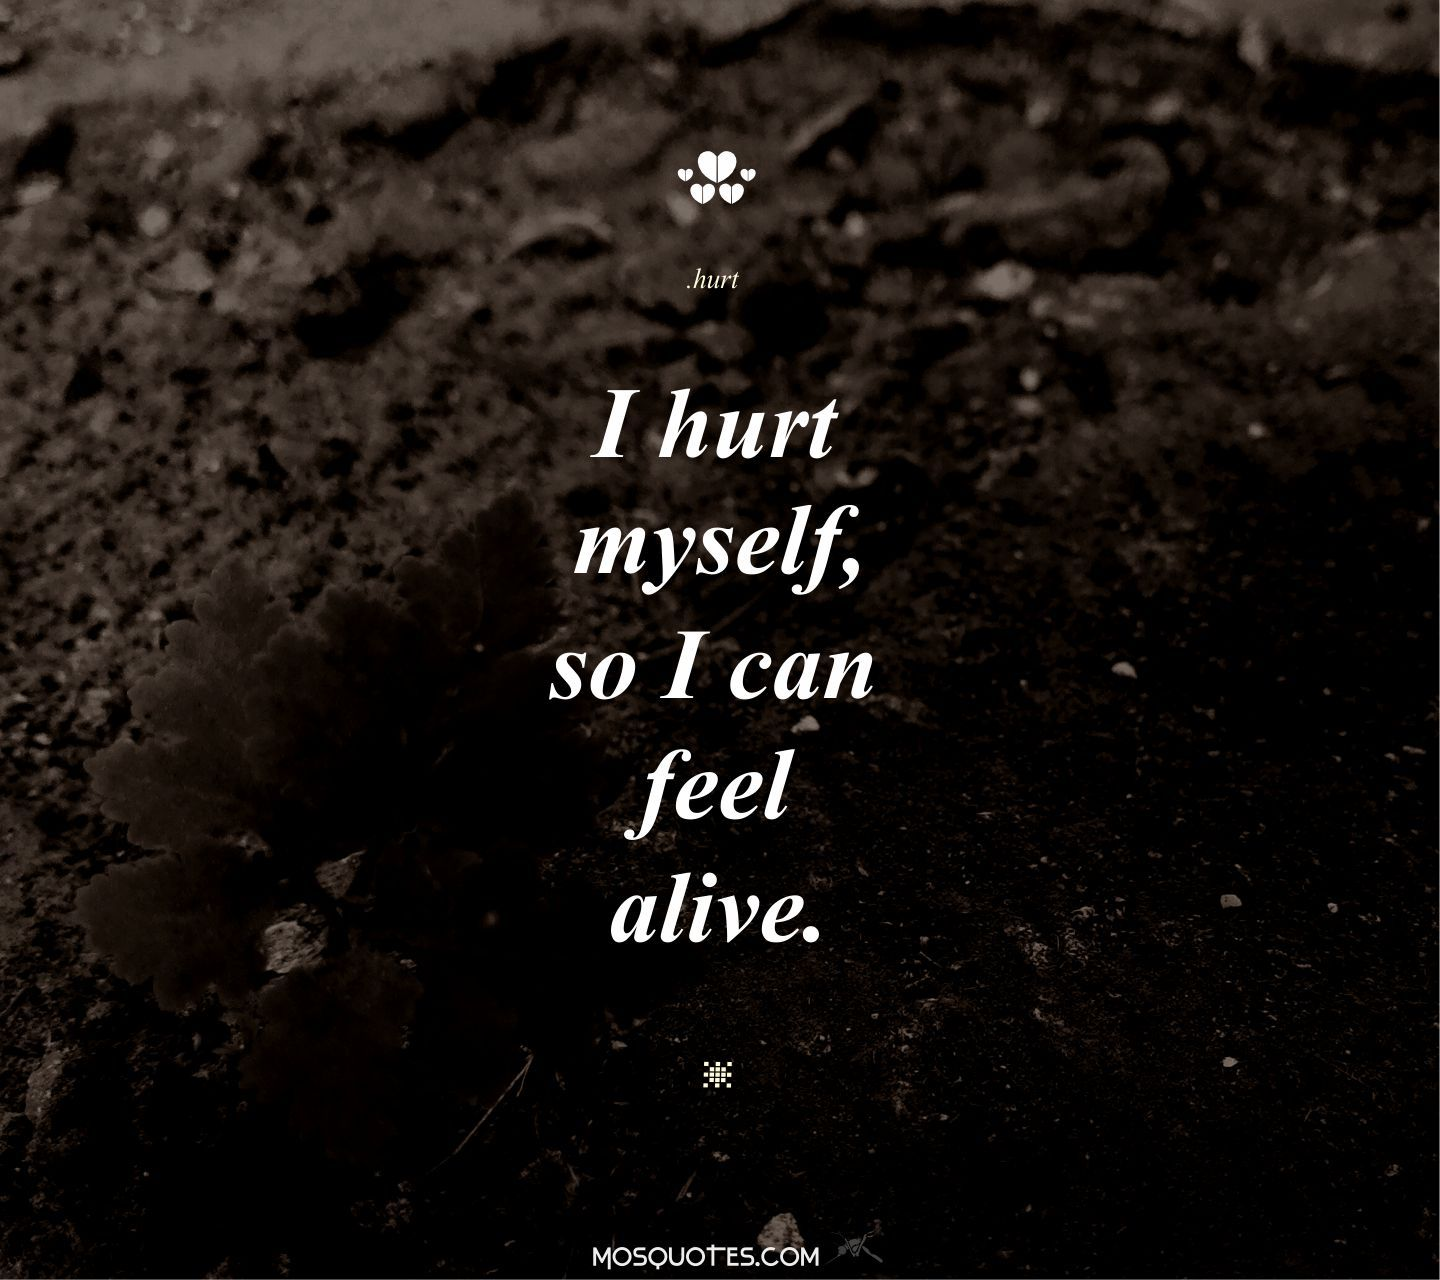 Cute Emo Love Quotes I Hurt MyselfSo I Can Feel Alive